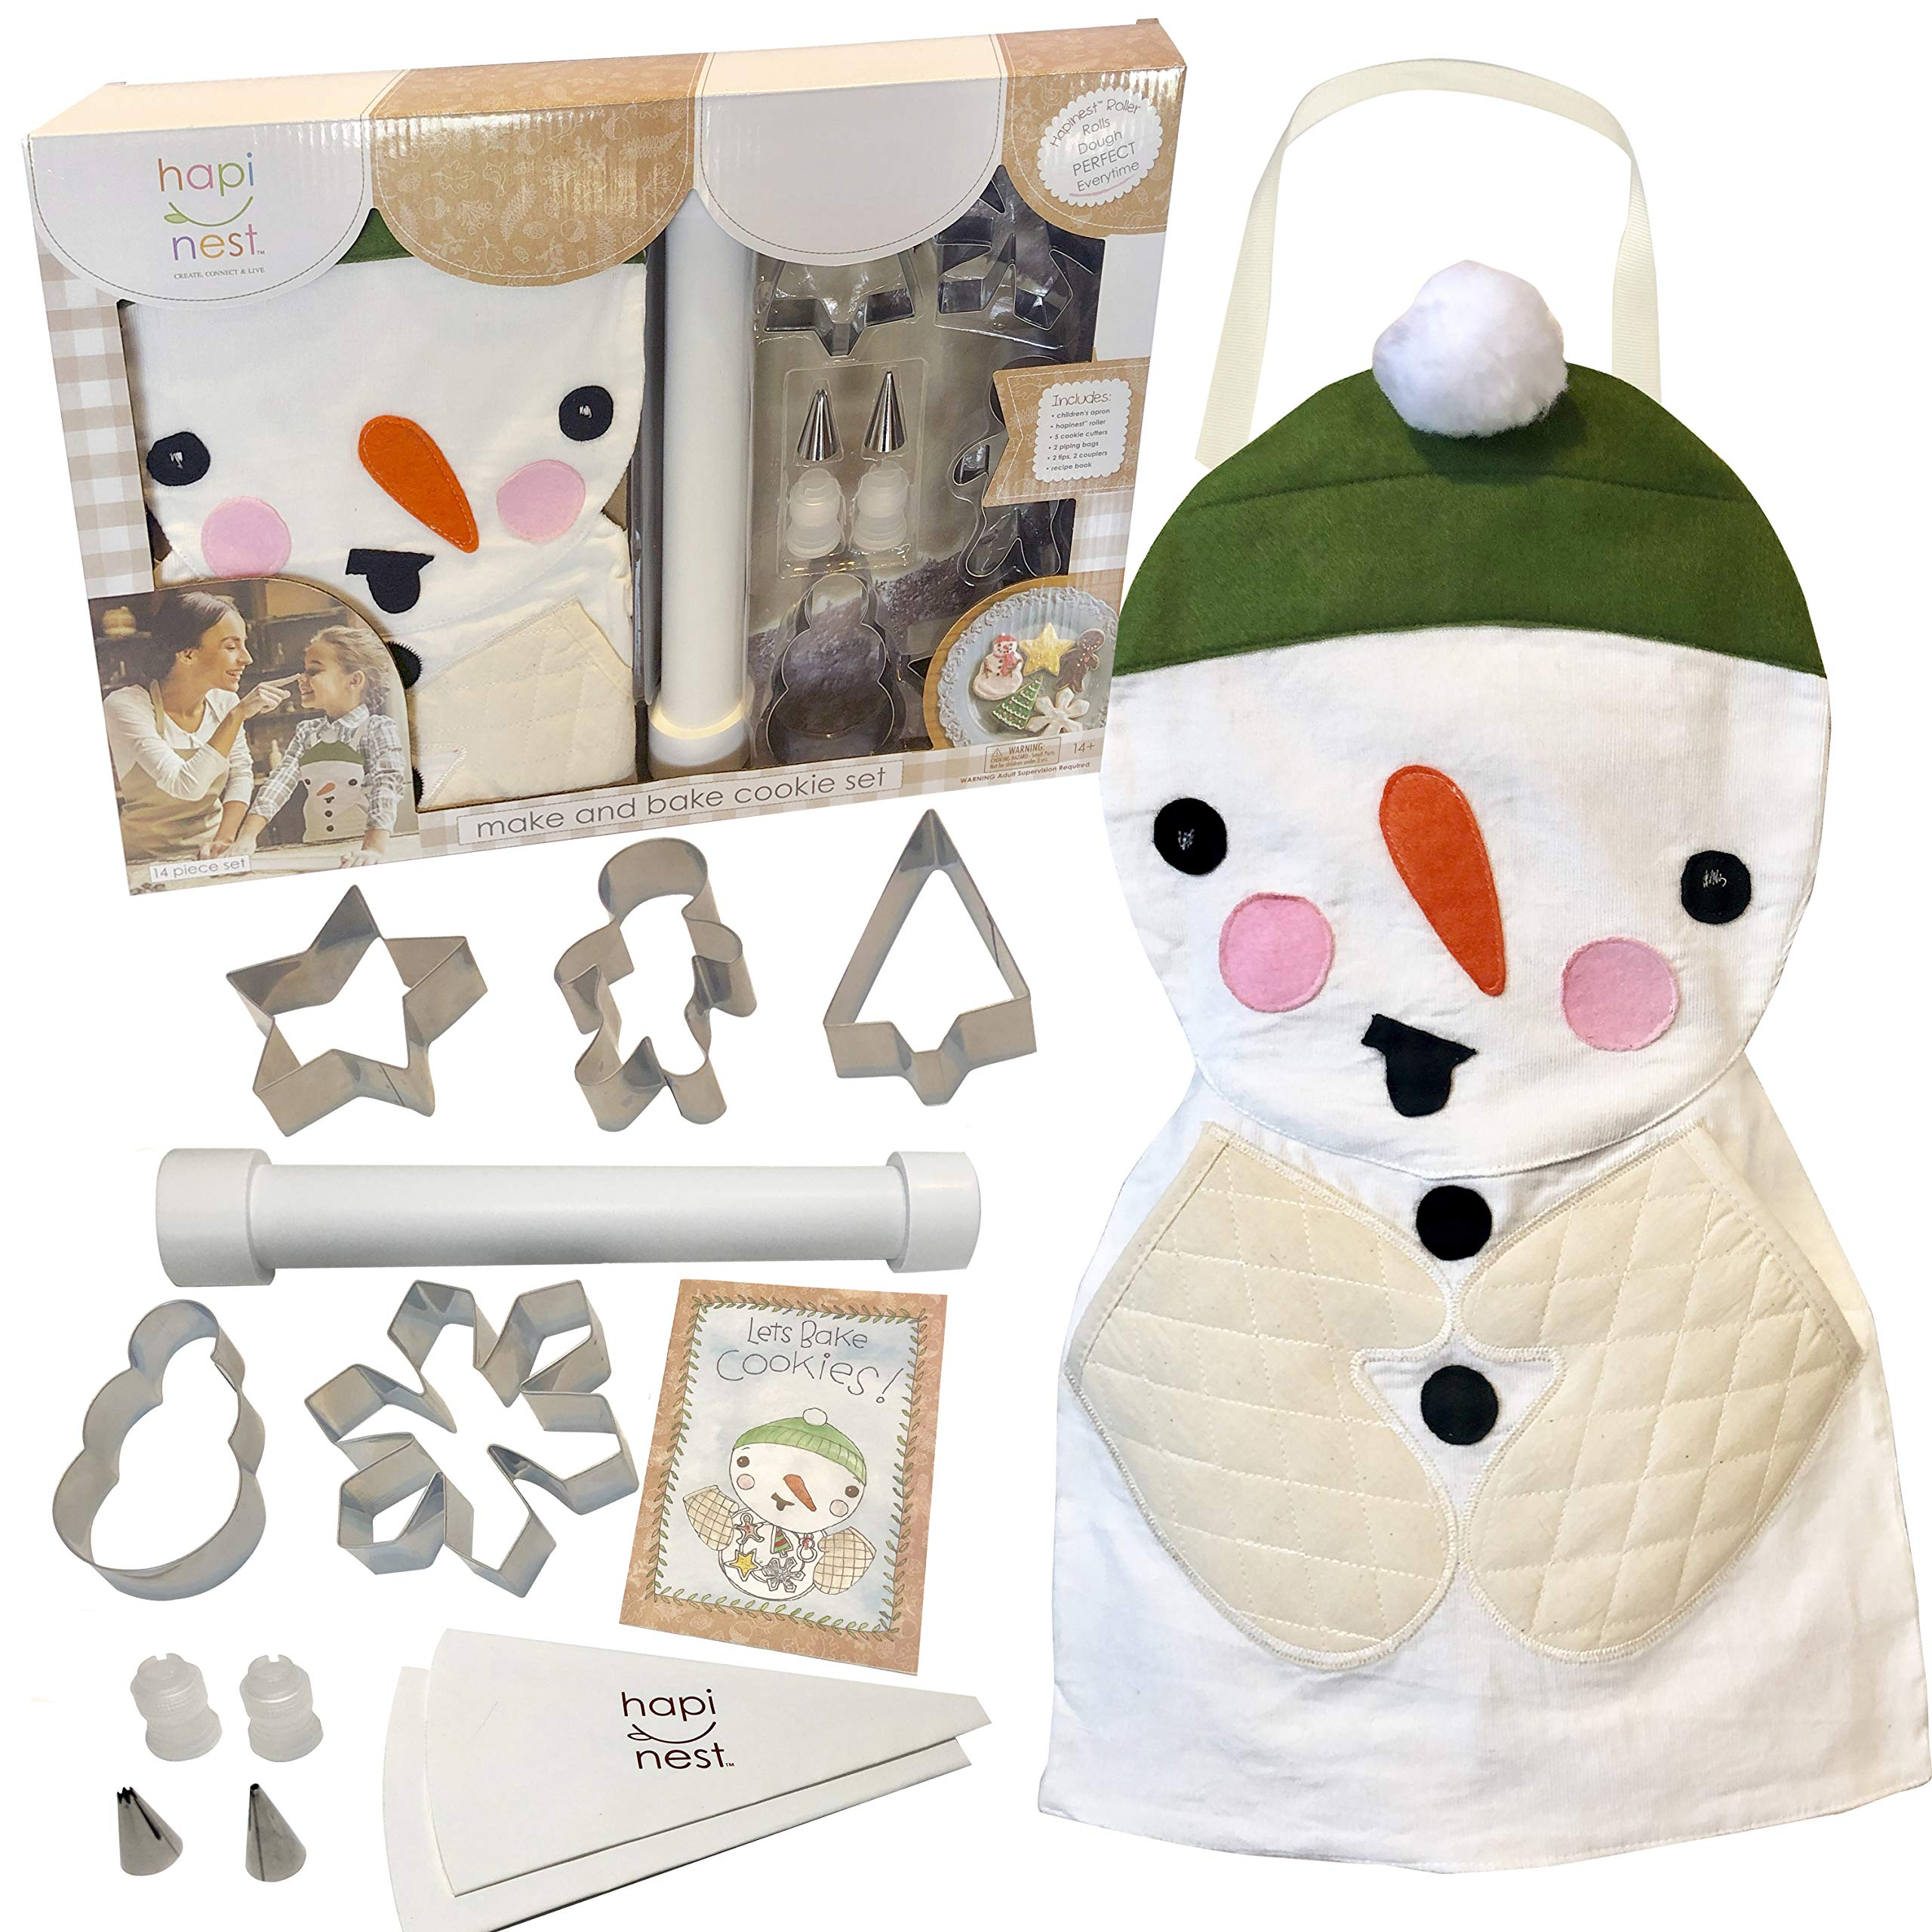 Hapinest Kids Baking Set for Girls and Boys Gifts, Make and Bake Christmas Cookies, Snowman Apron and Holiday Cookie Cutters, 14 pieces by Hapinest